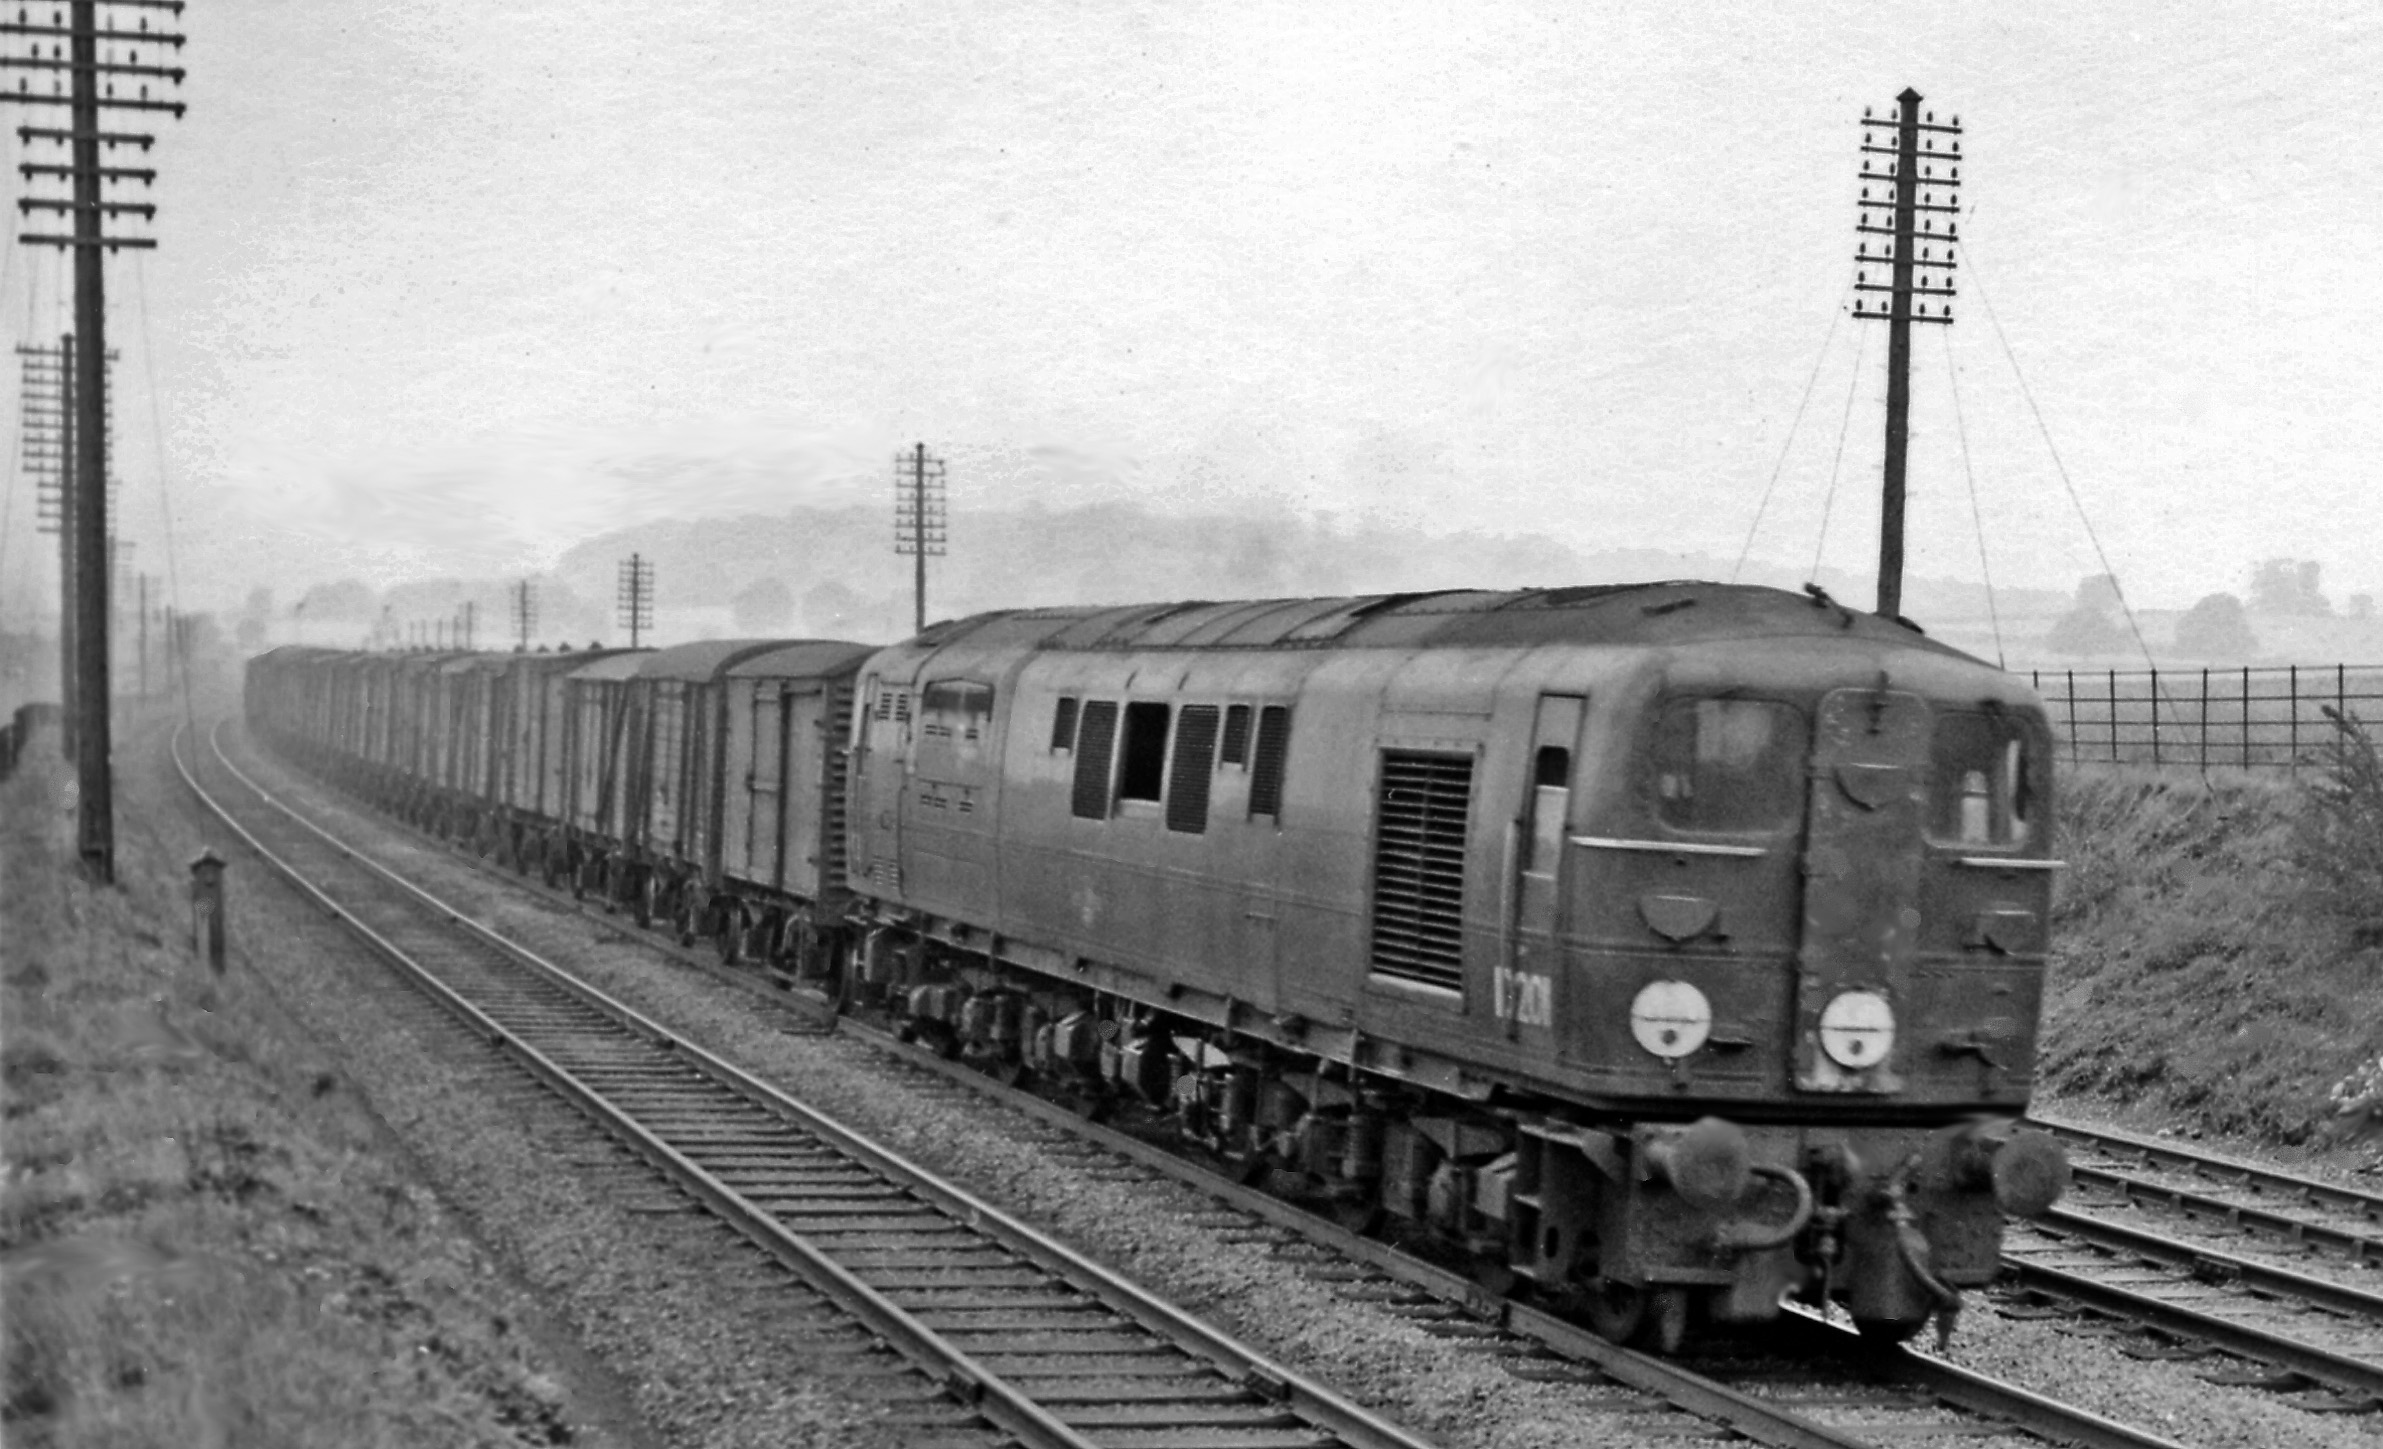 Tring_with_Bulleid_English-Electric_1020